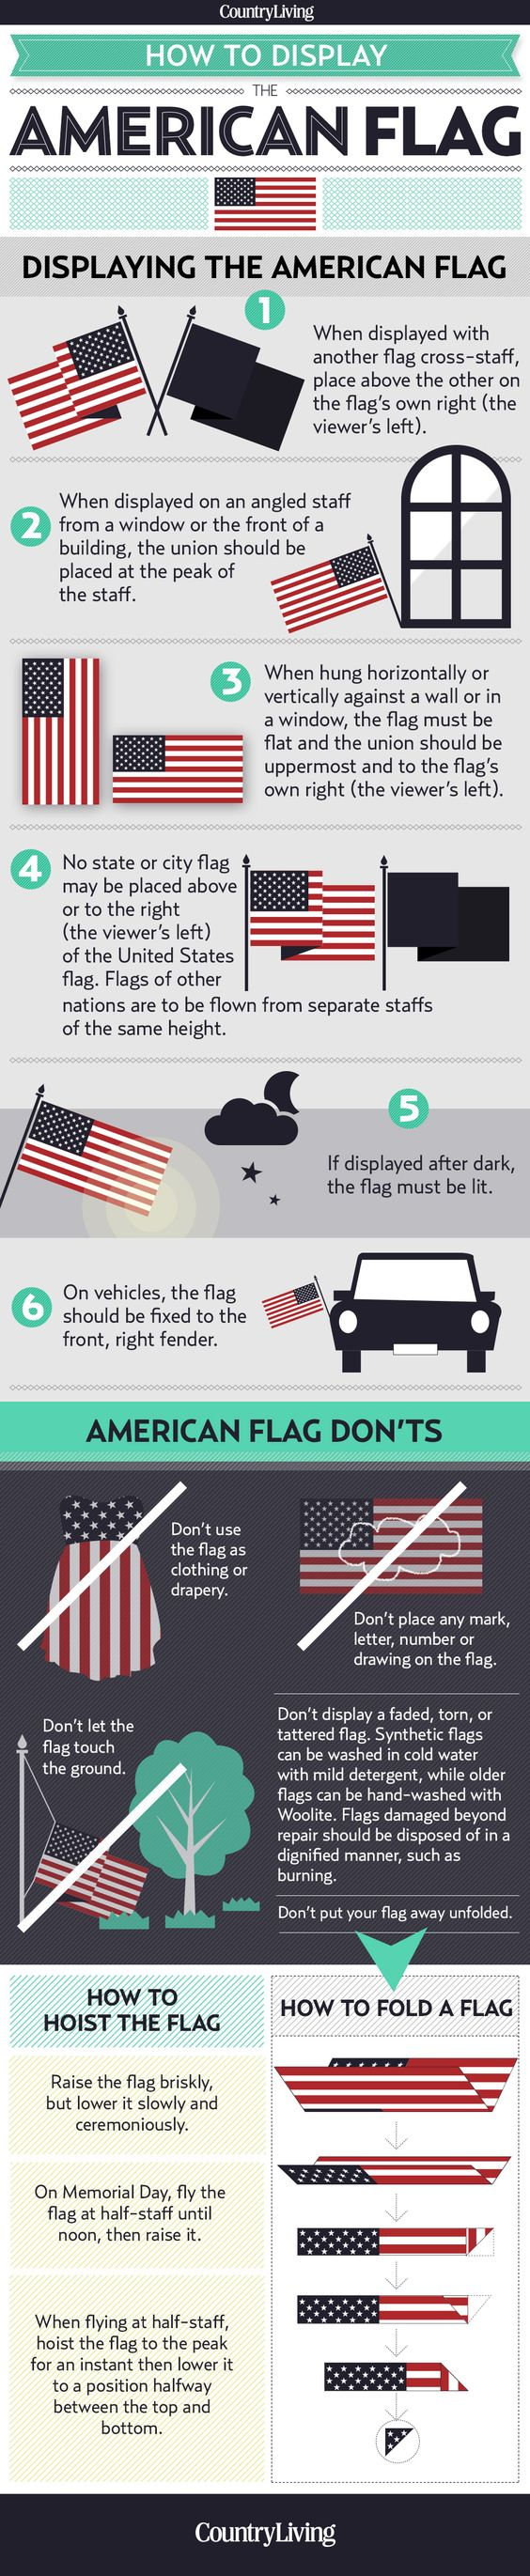 displaying the flag proper american flag etiquette